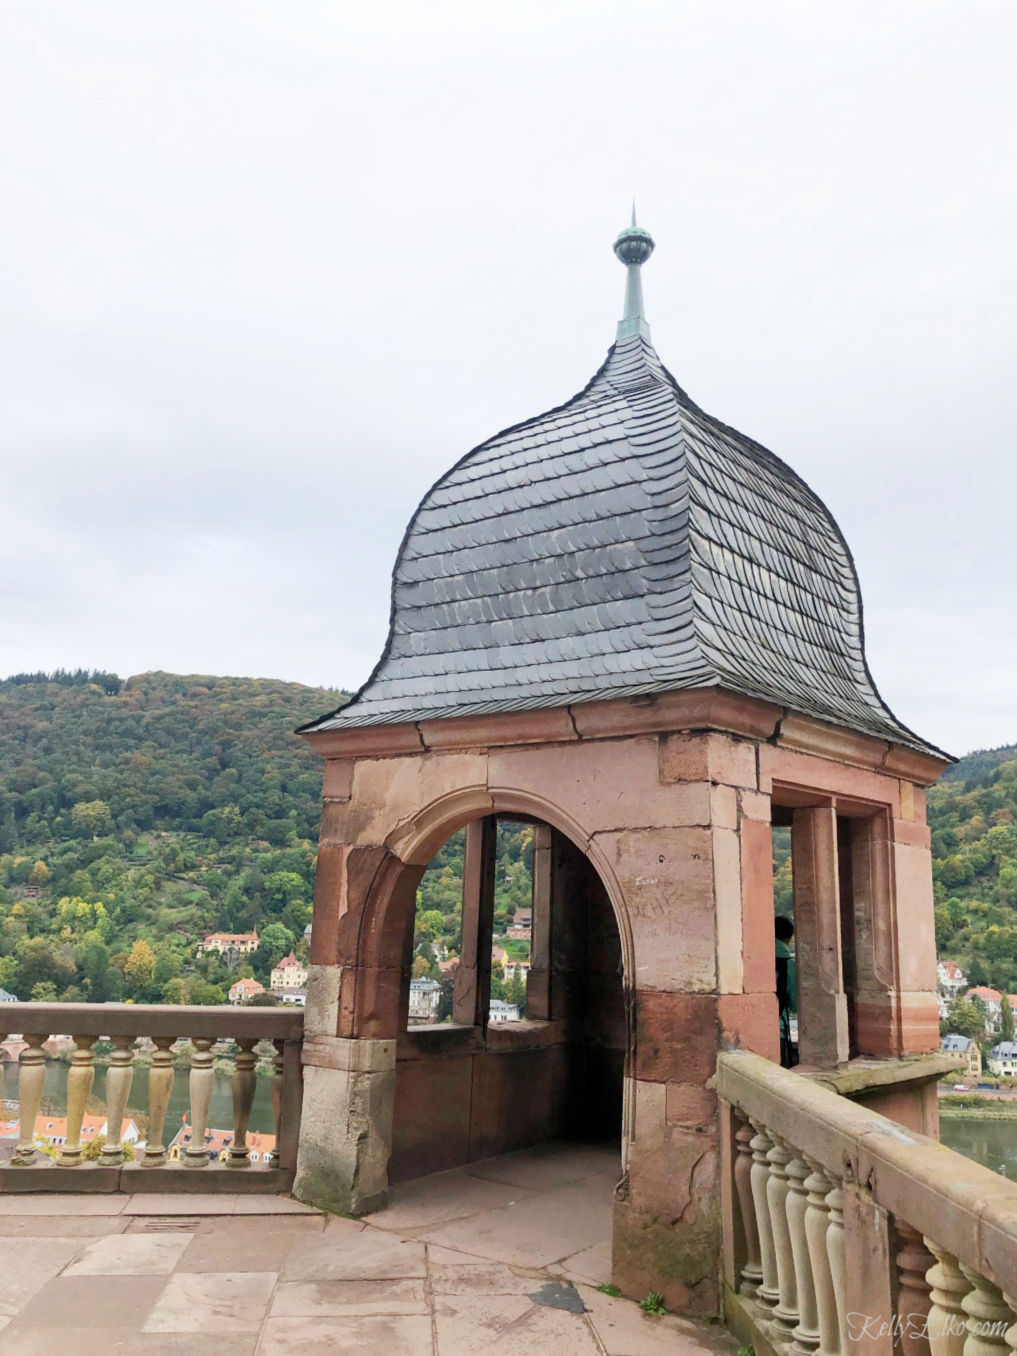 Heidelberg Germany view from the castle kellyelko.com #heidelberg #heidelbergcastle #germany #luxurytravel #travelblogger #travelblog #nekarriver #europeantravel #europe #castles